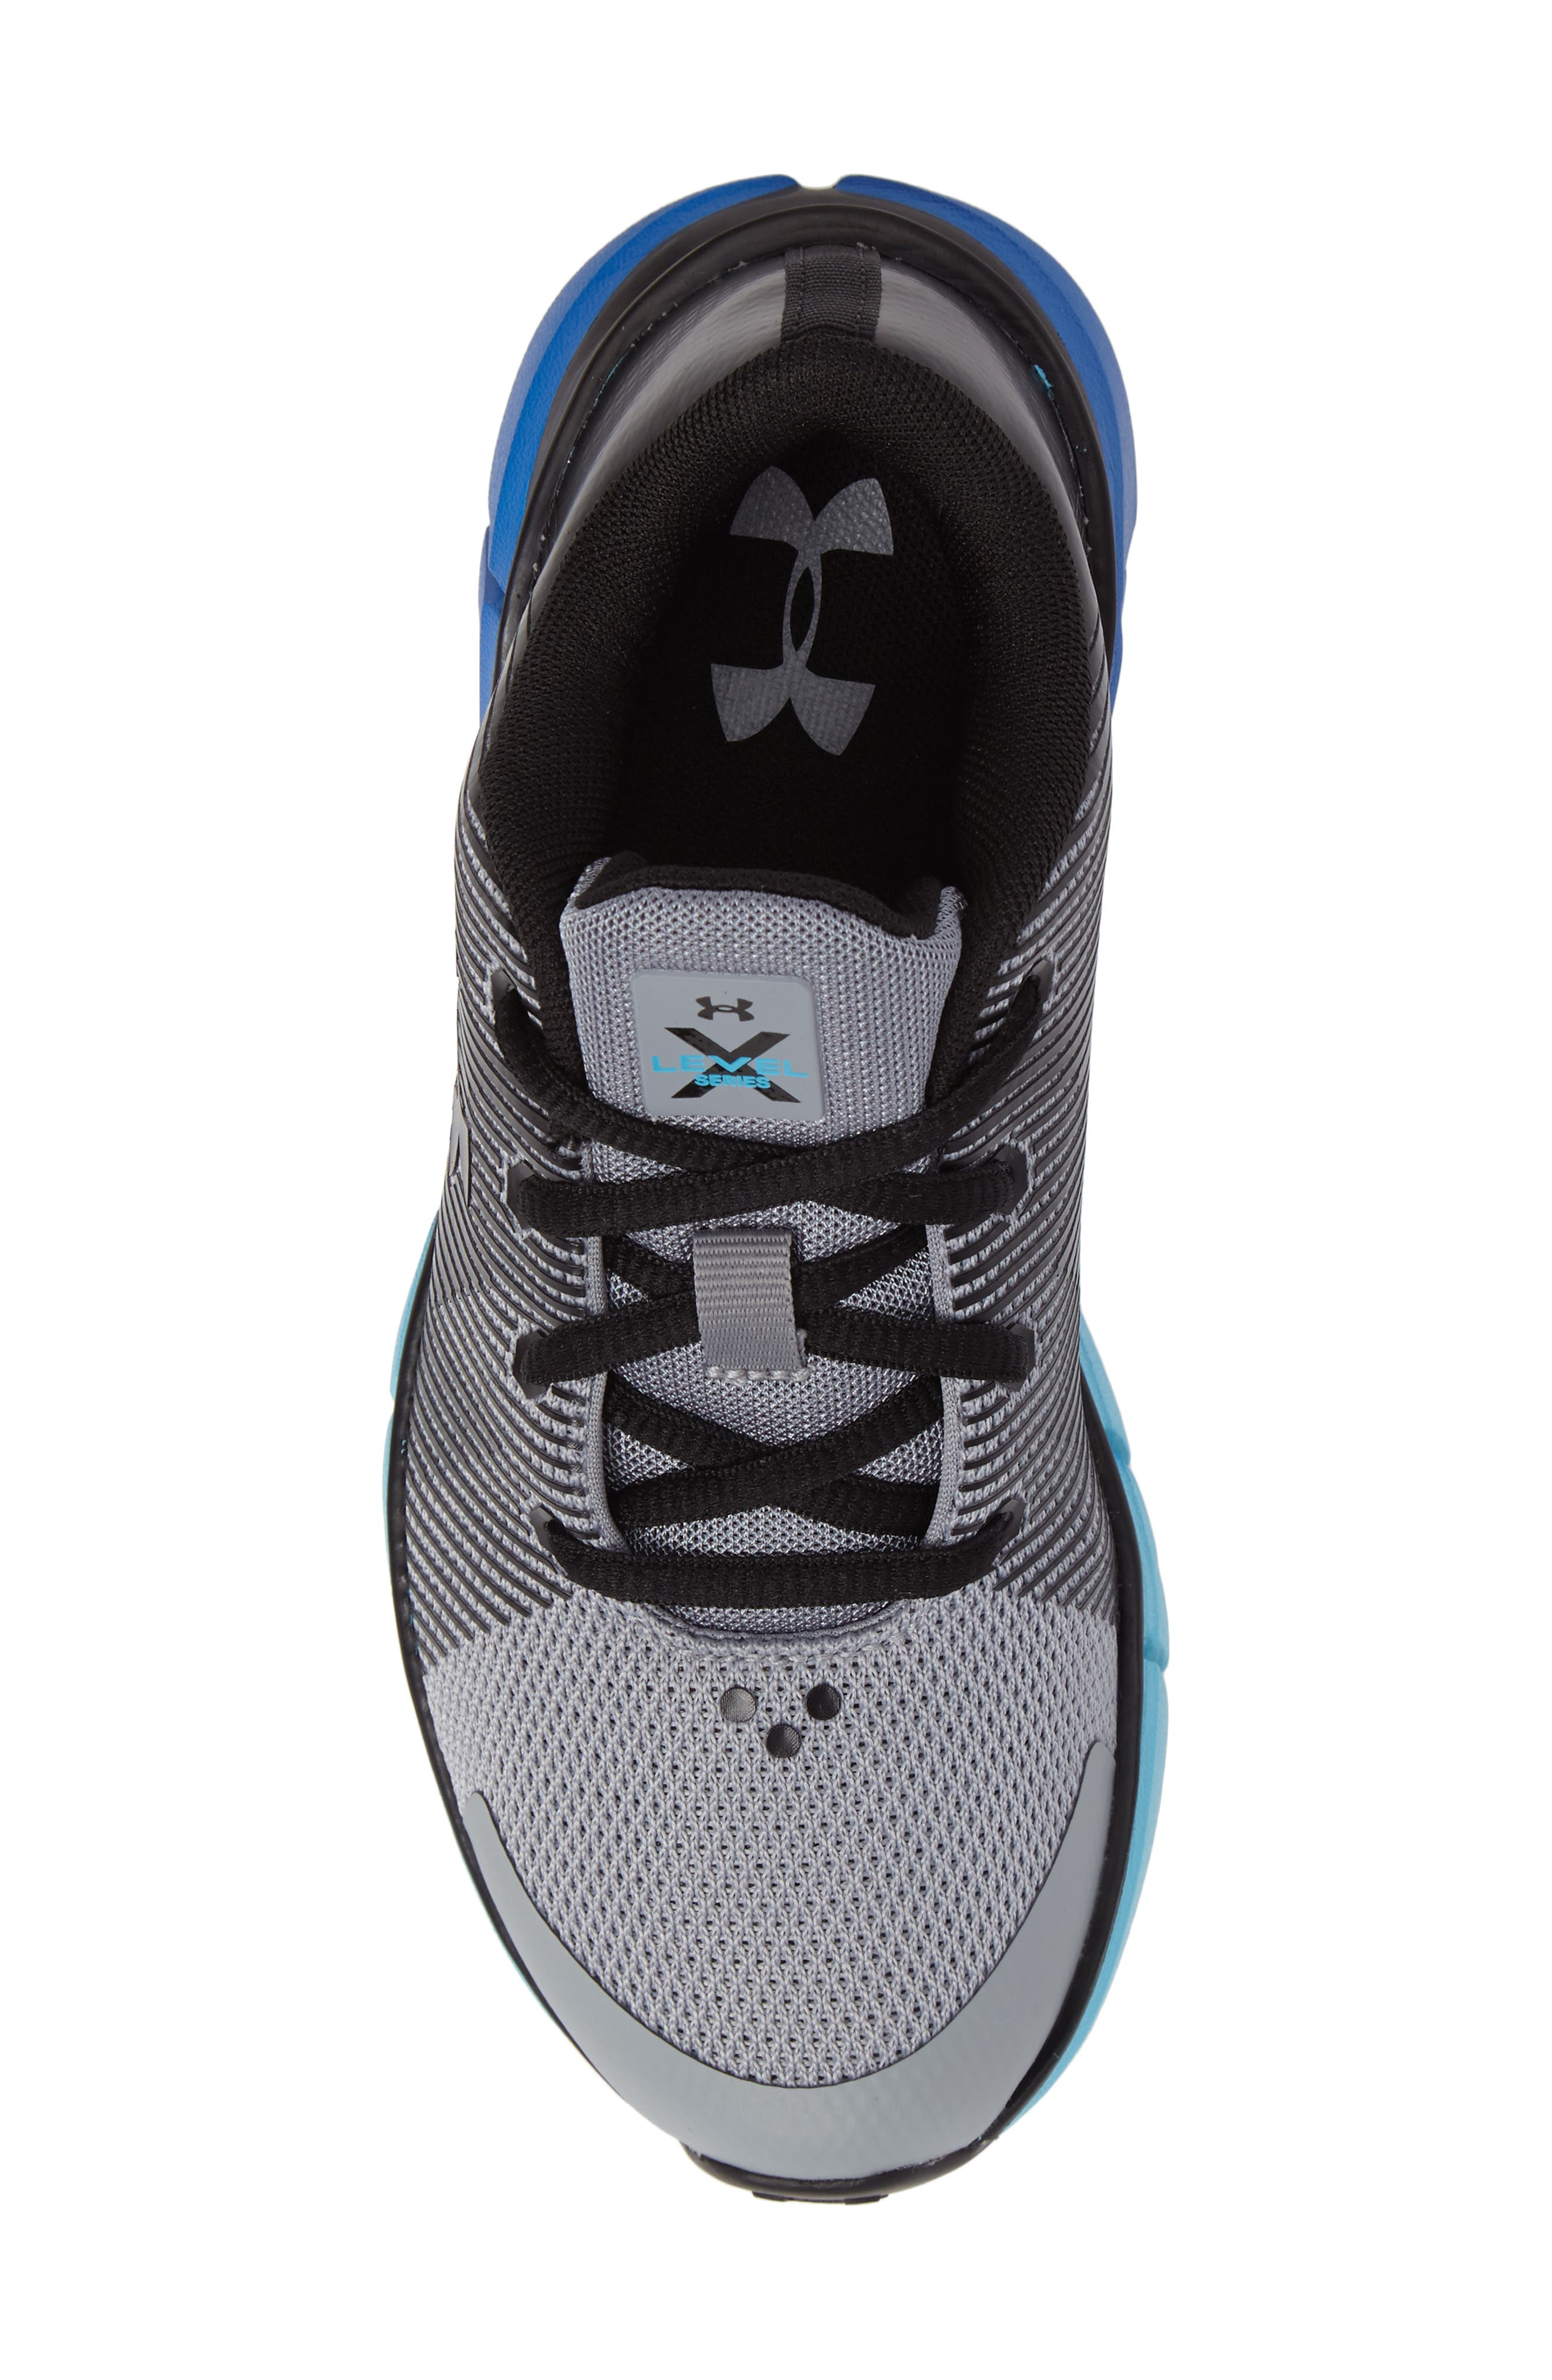 BGS X Level Scramjet Running Shoe,                             Alternate thumbnail 5, color,                             036